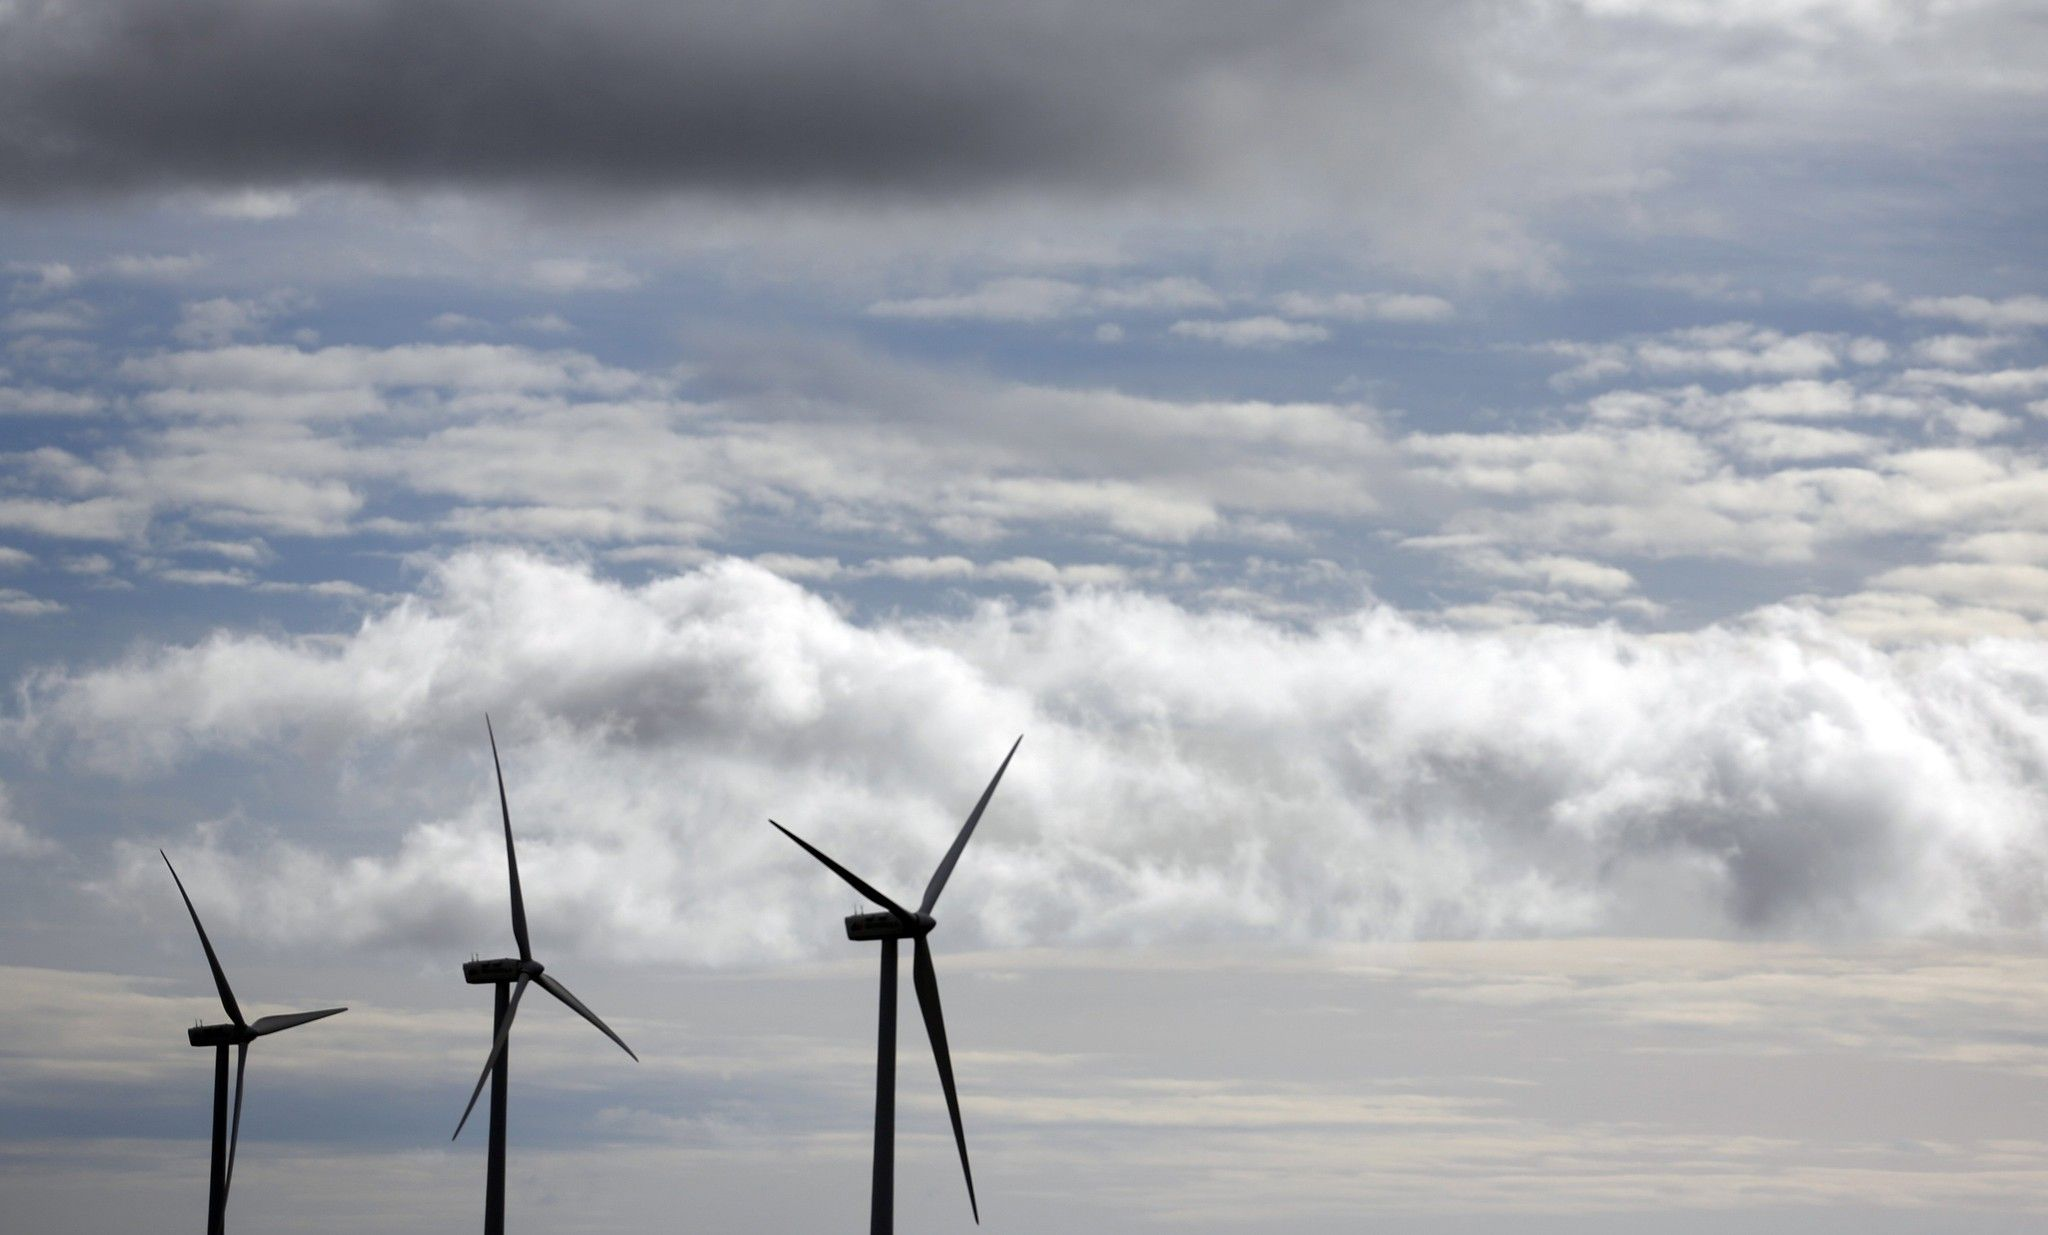 Southern maryland prevails over shore on wind turbines